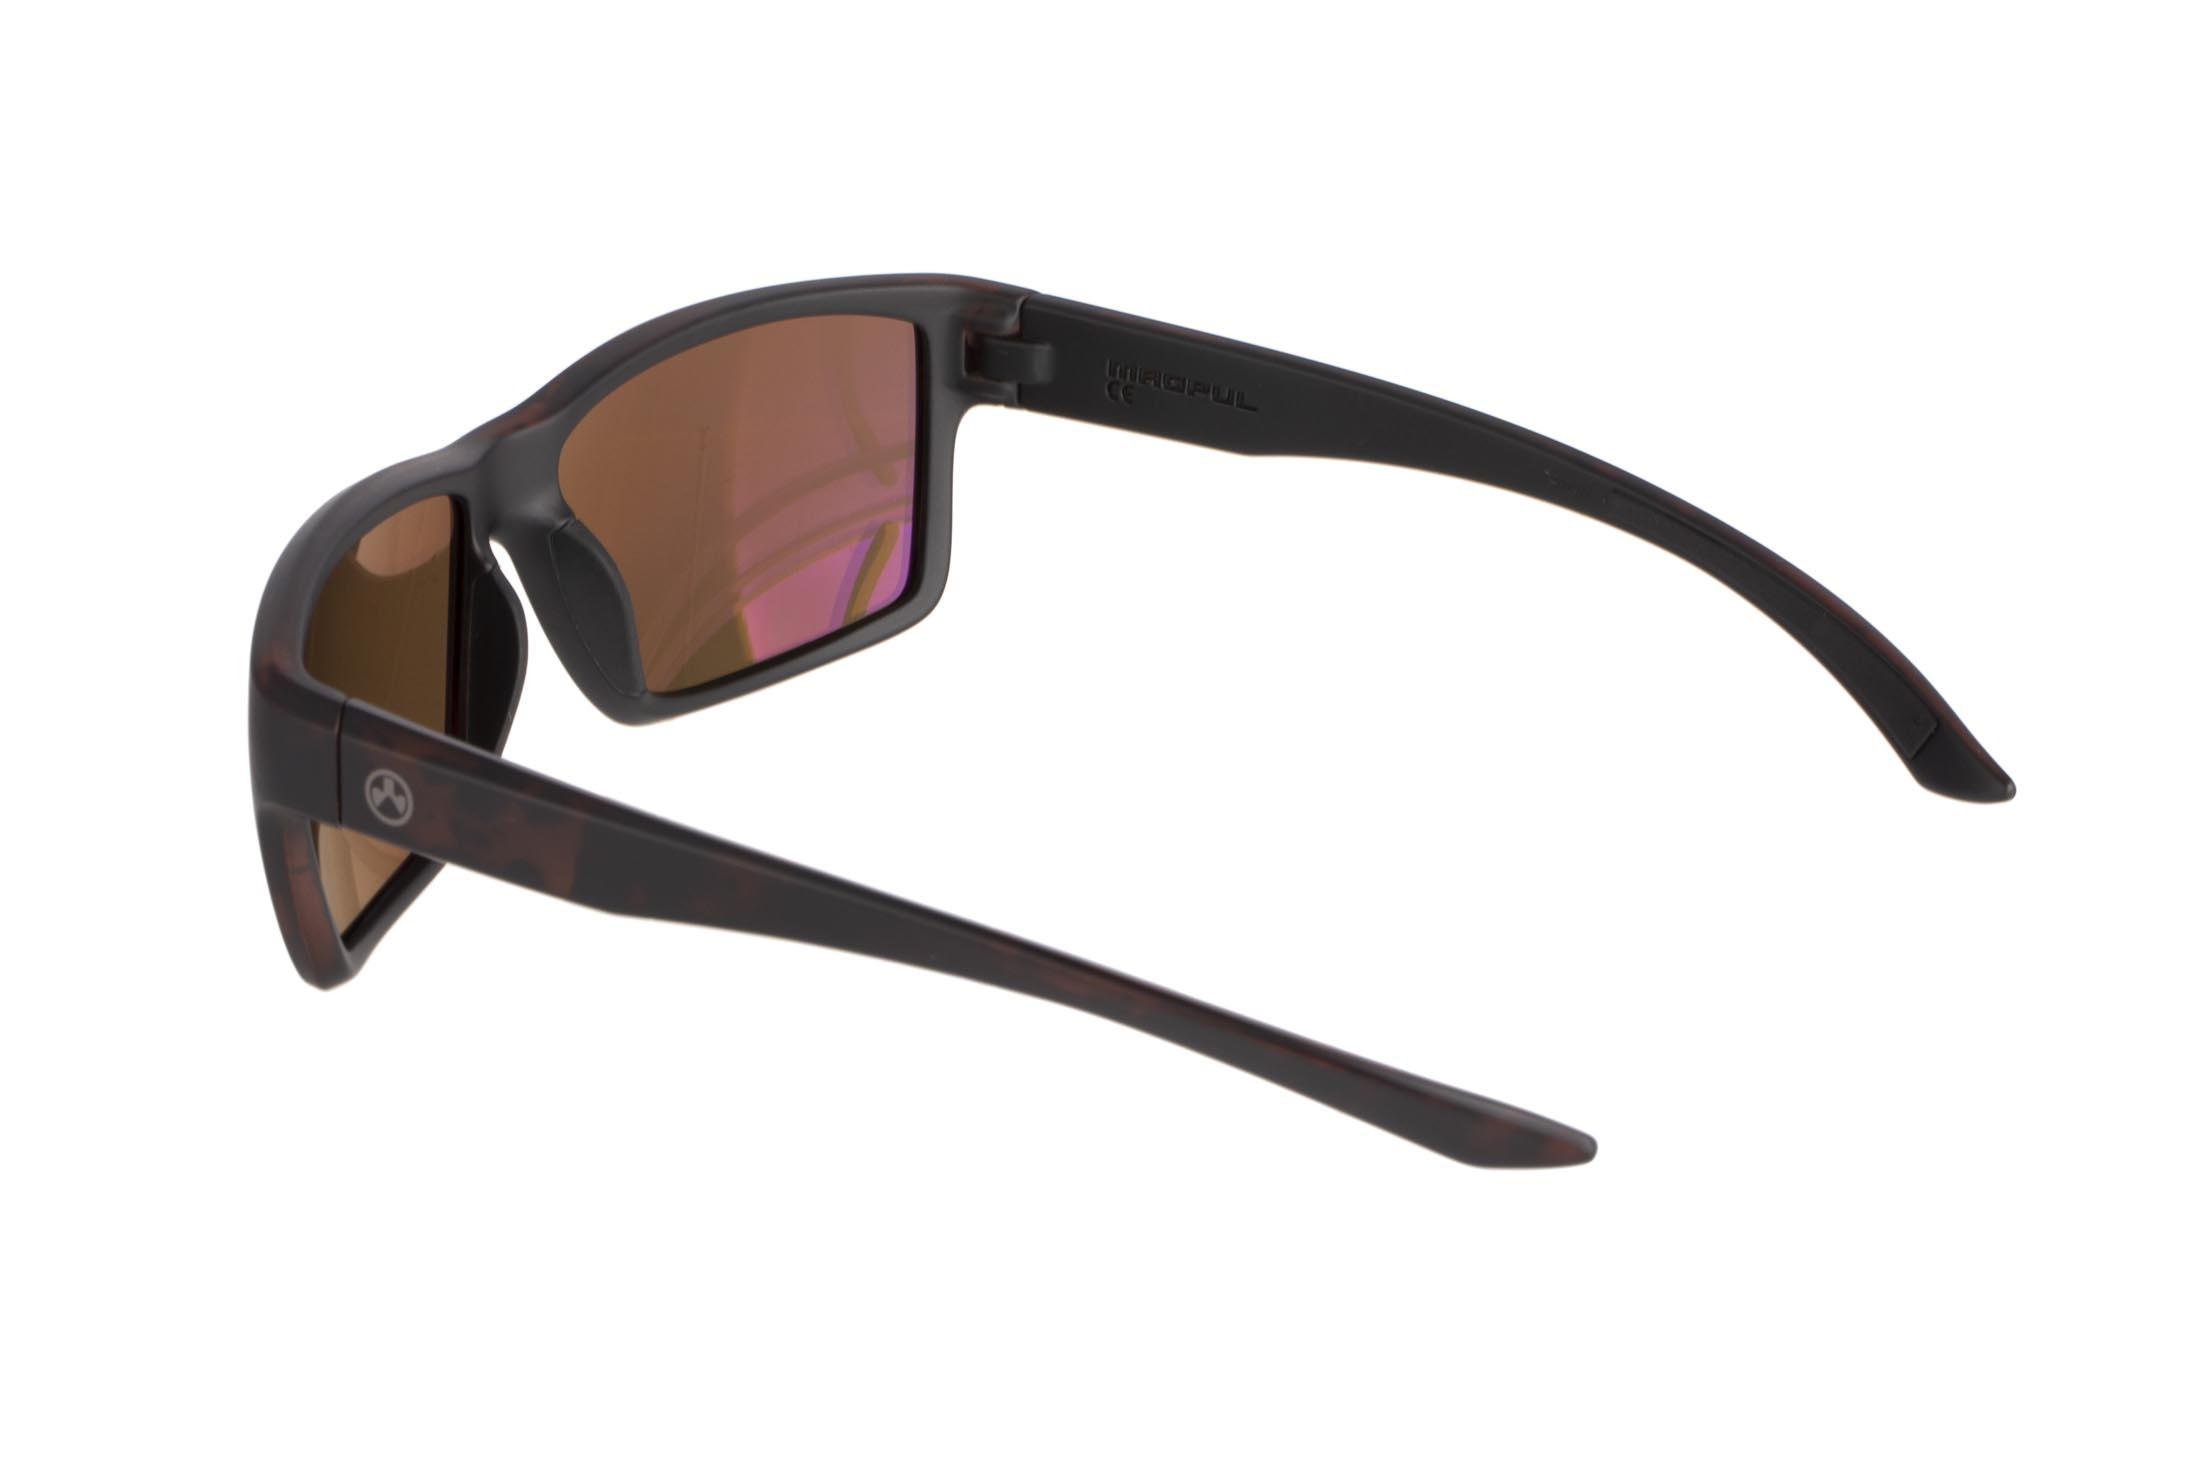 Magpul Explorer tortoise frame eye protection with polarized bronze/gold lenses are designed to complement over-ear hearing protection